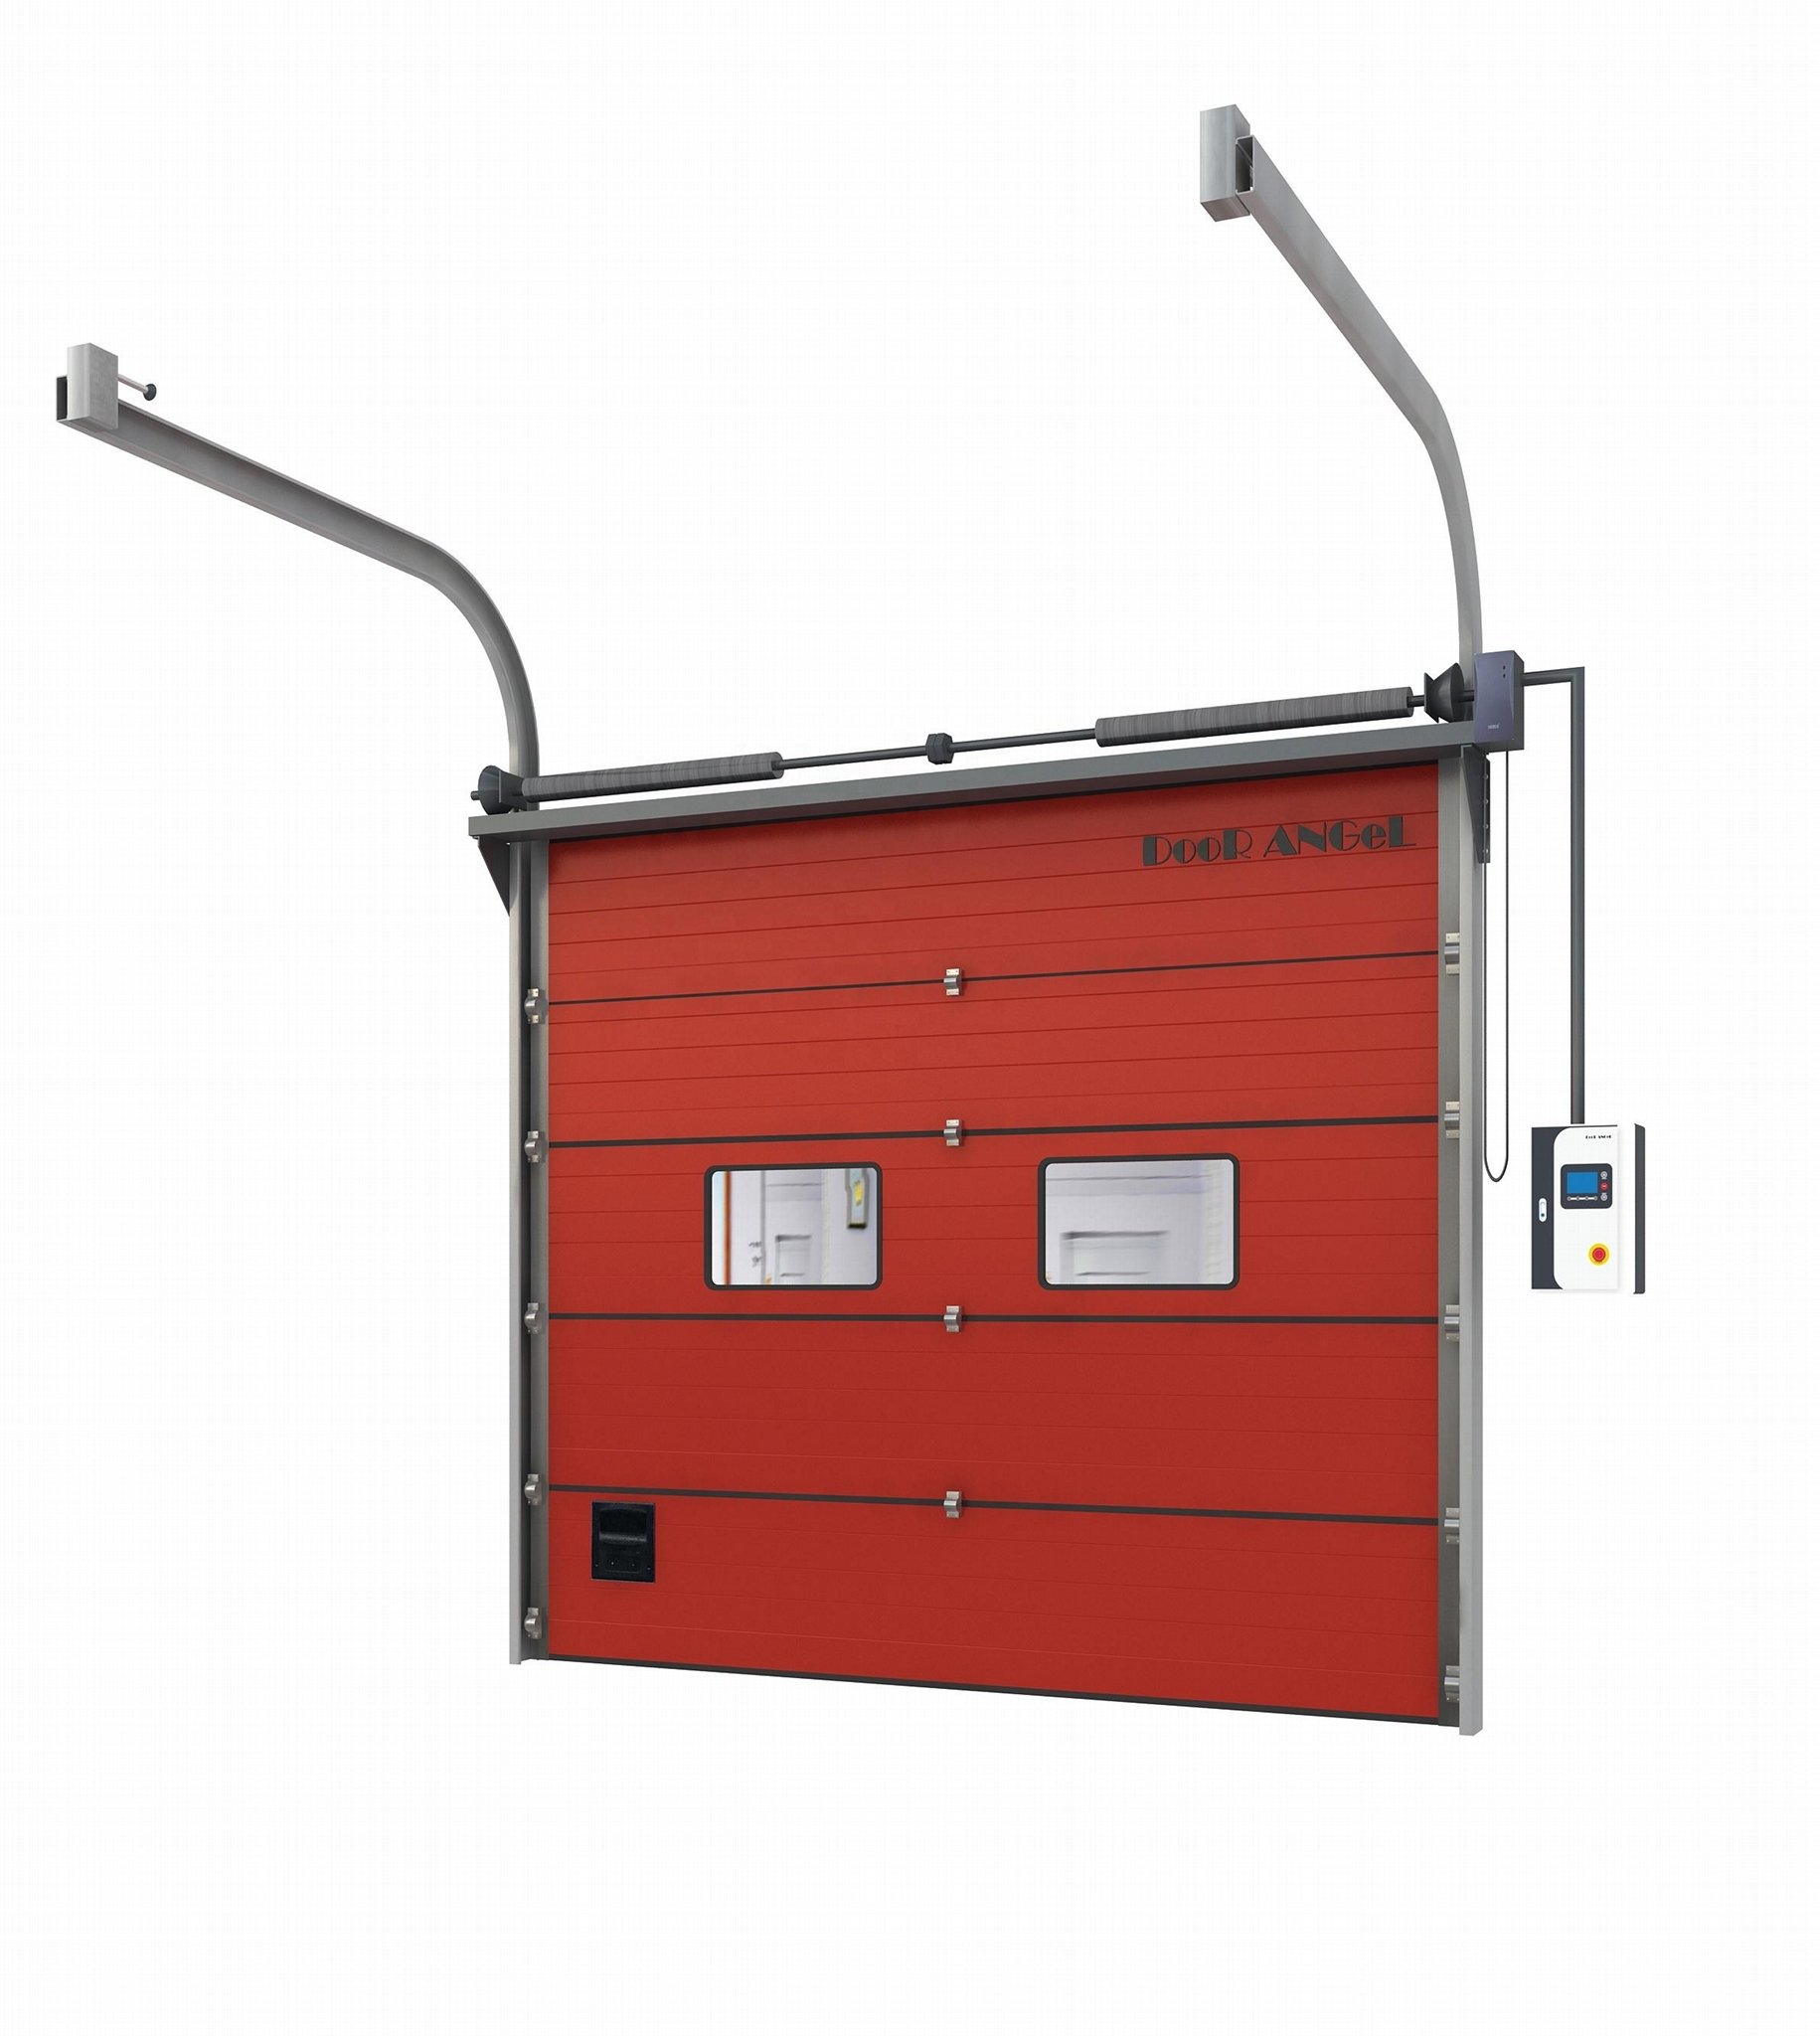 Automatic Fire Resistant Insulated Metal Gate Passage Entrance Exterior door 4